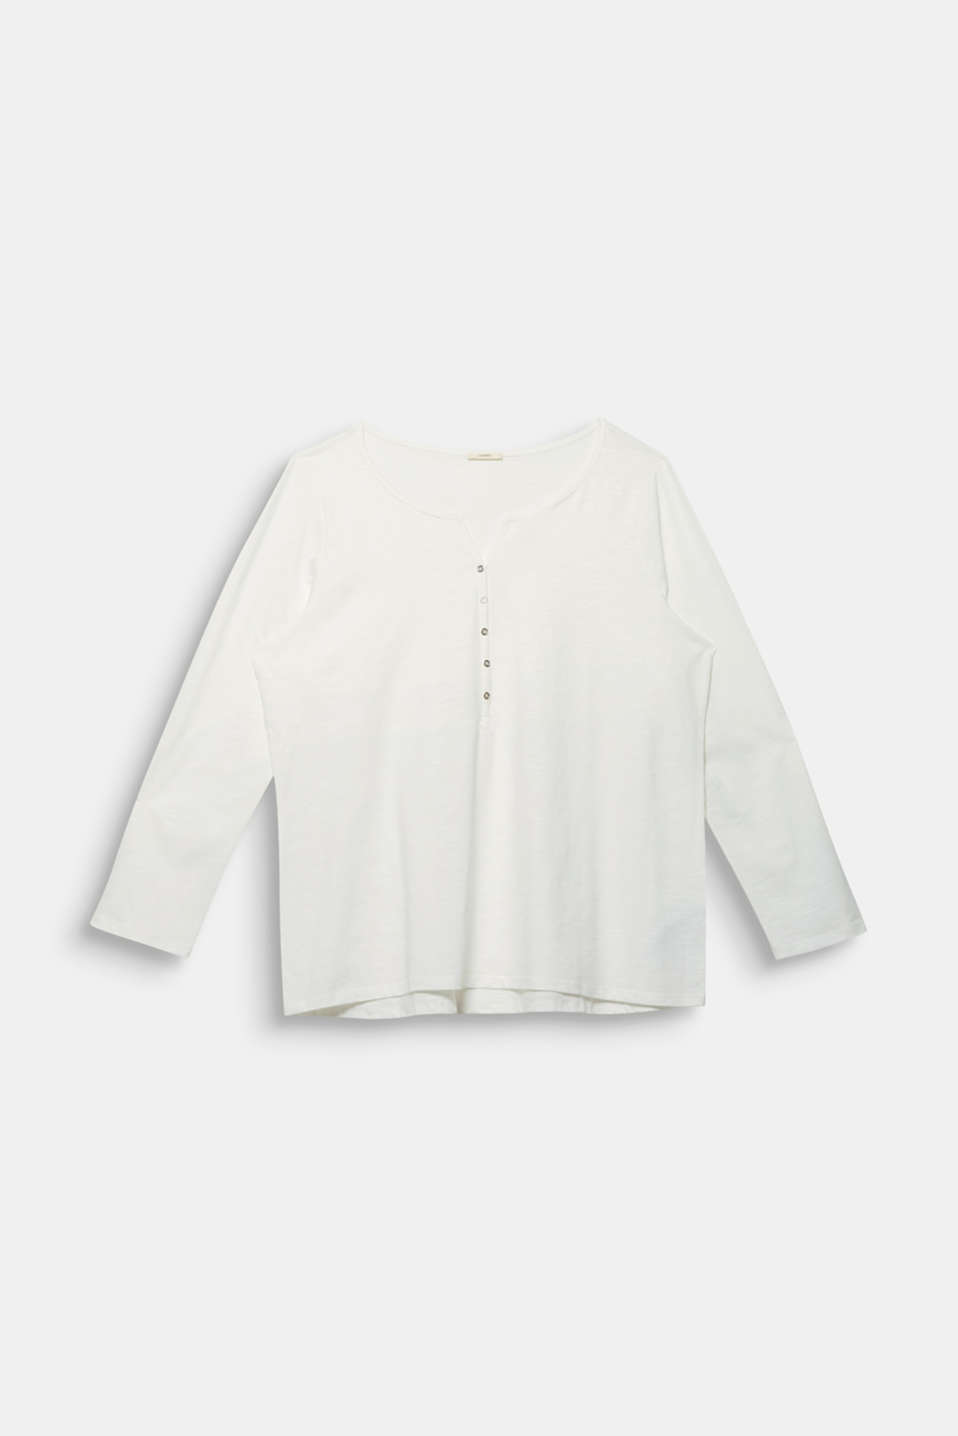 CURVY Henley long sleeve top, 100% organic cotton, OFF WHITE, detail image number 6